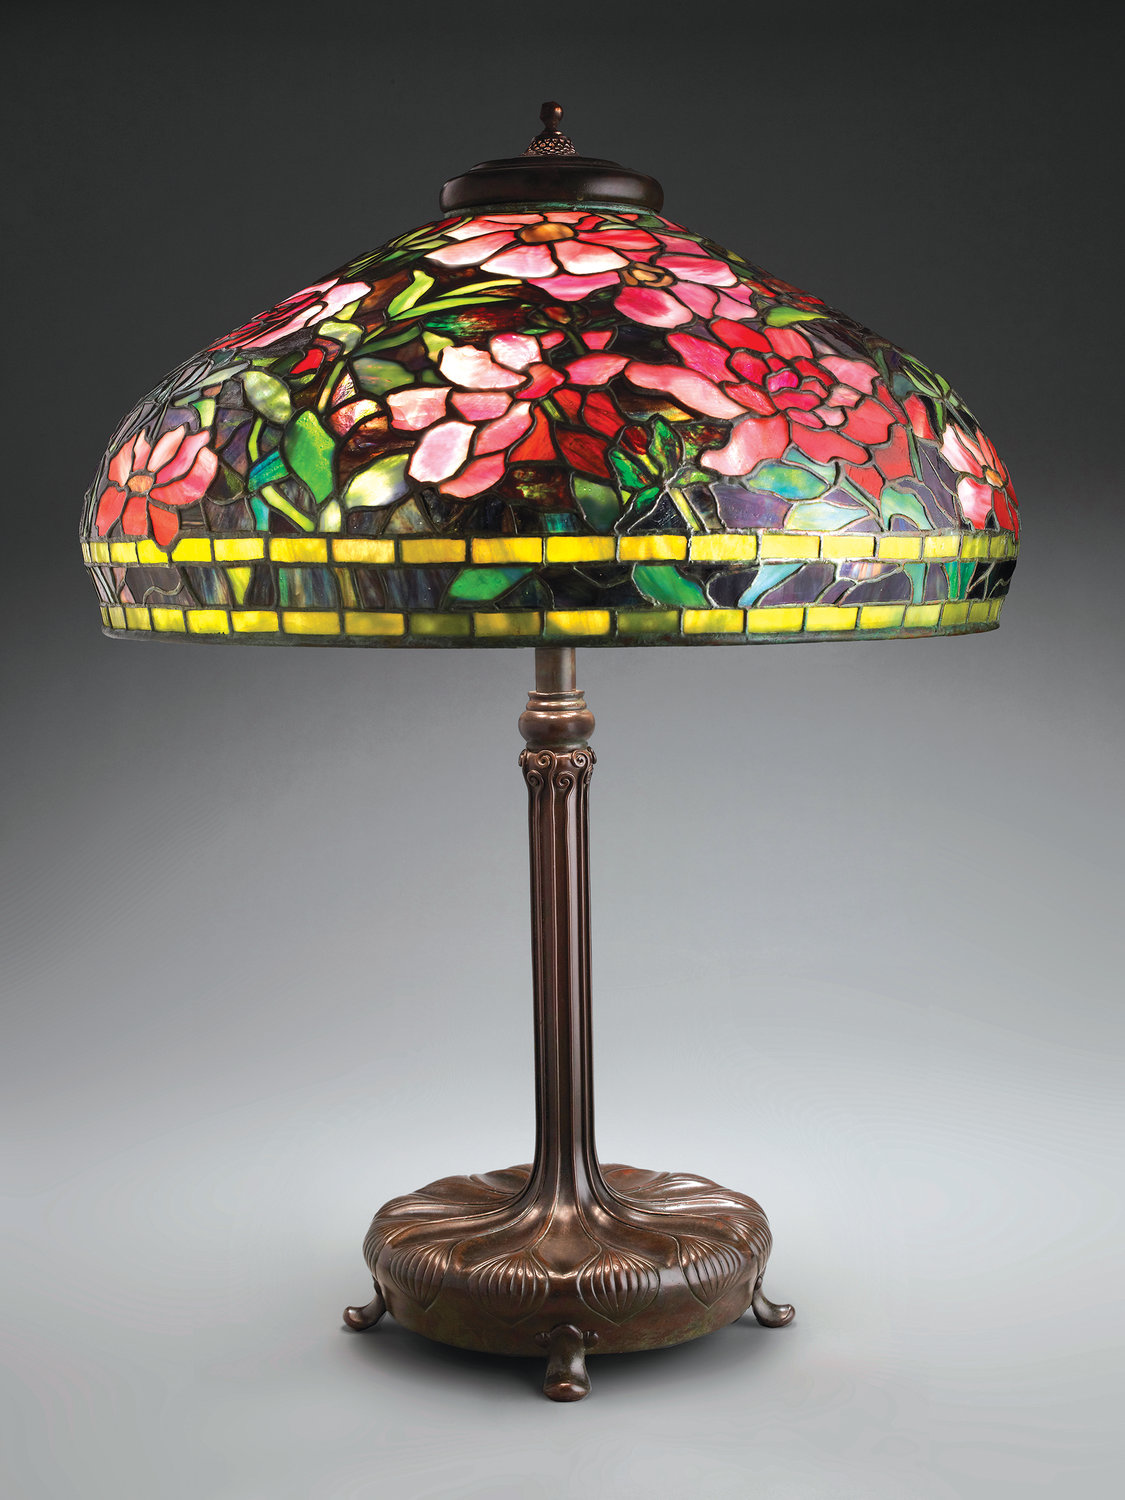 Peony Lamp — c. 1903-1905, bronze, leaded glass, Tiffany Studios